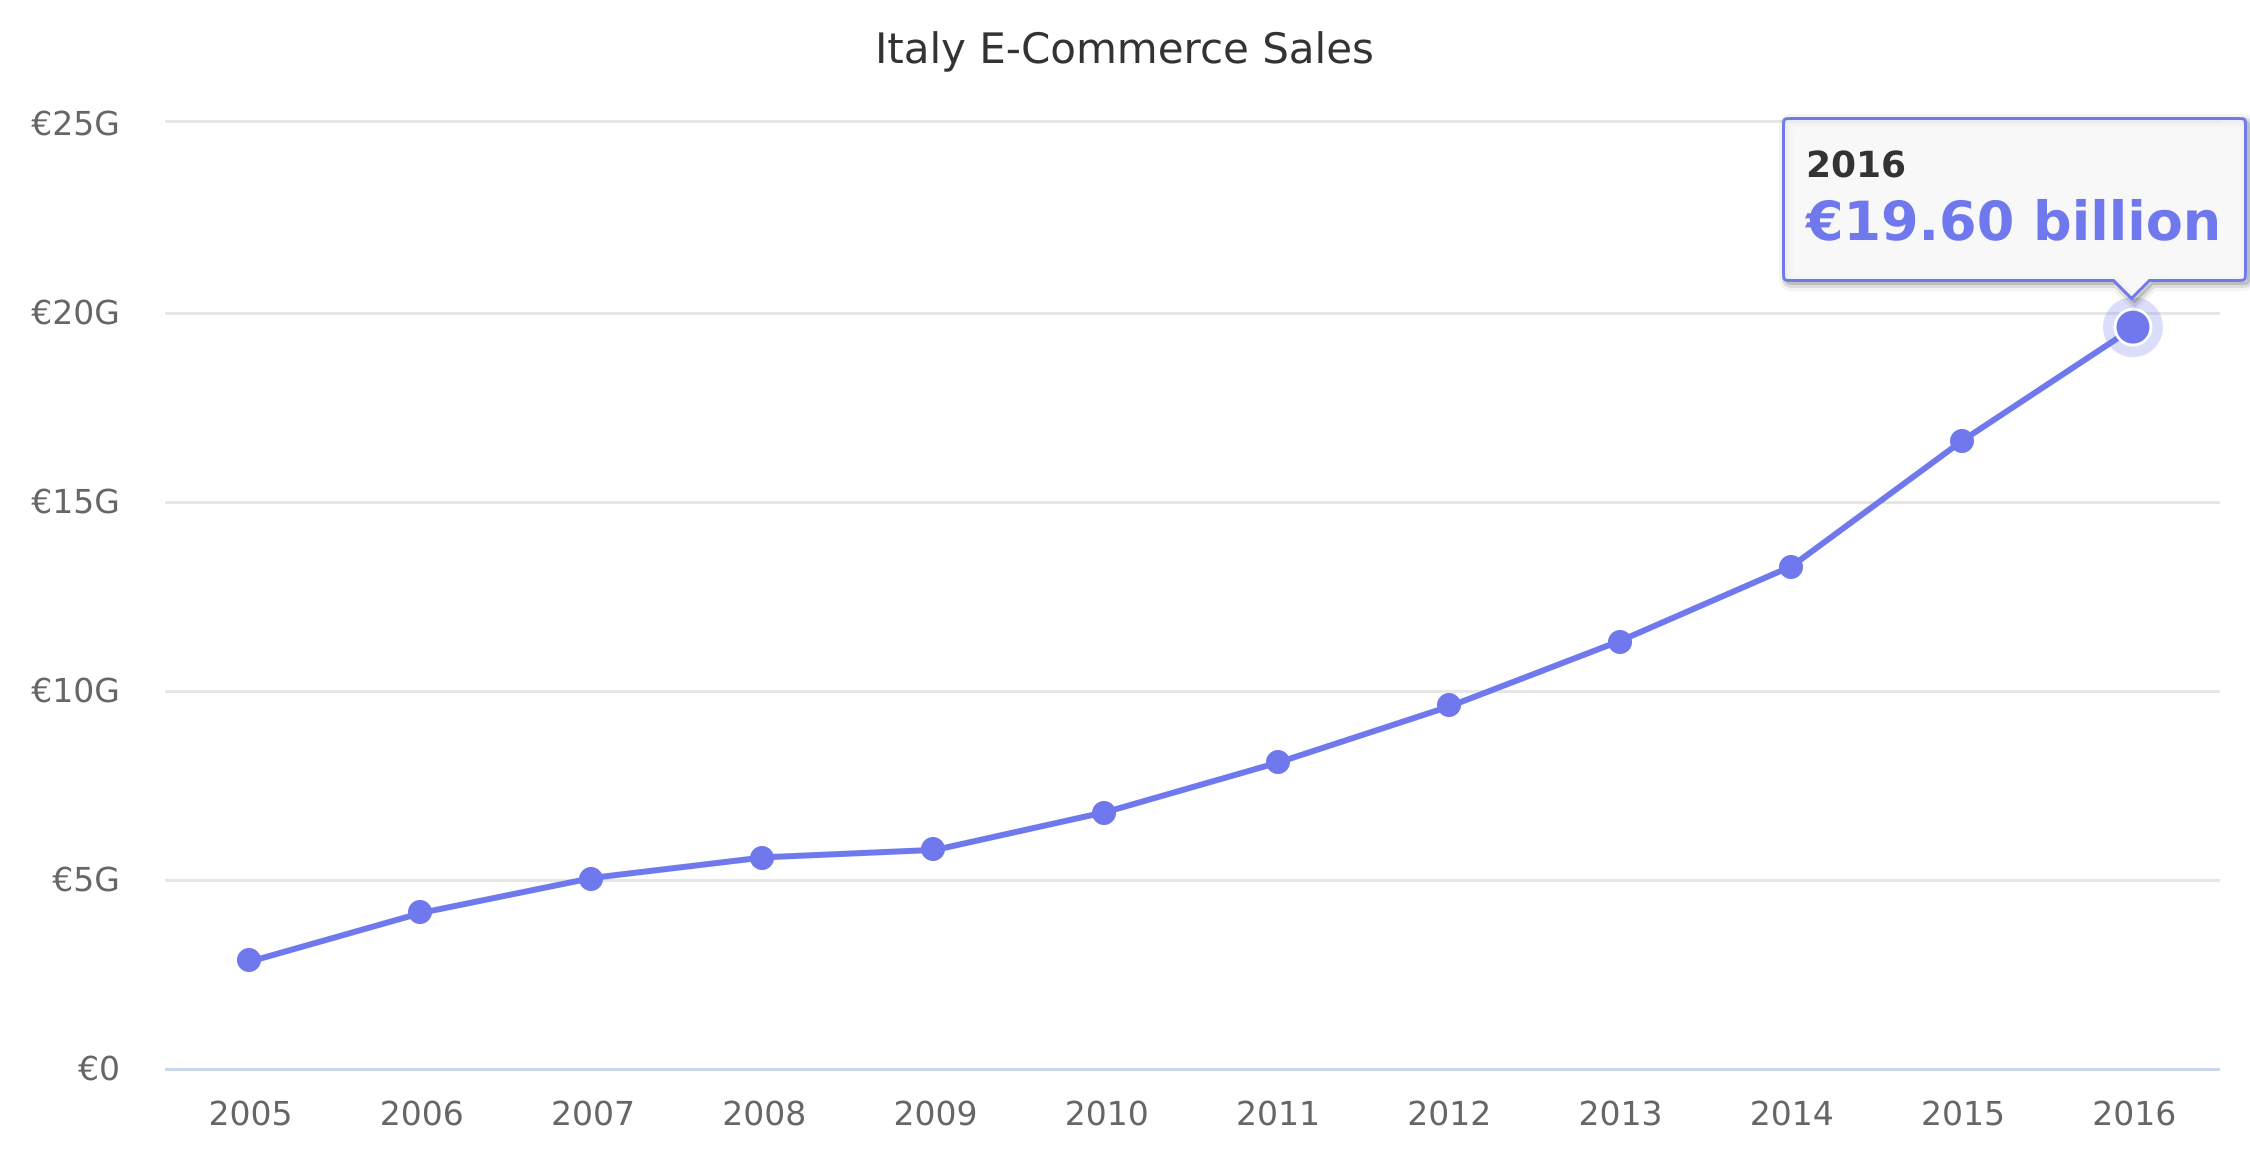 Italy E-Commerce Sales 2005-2016